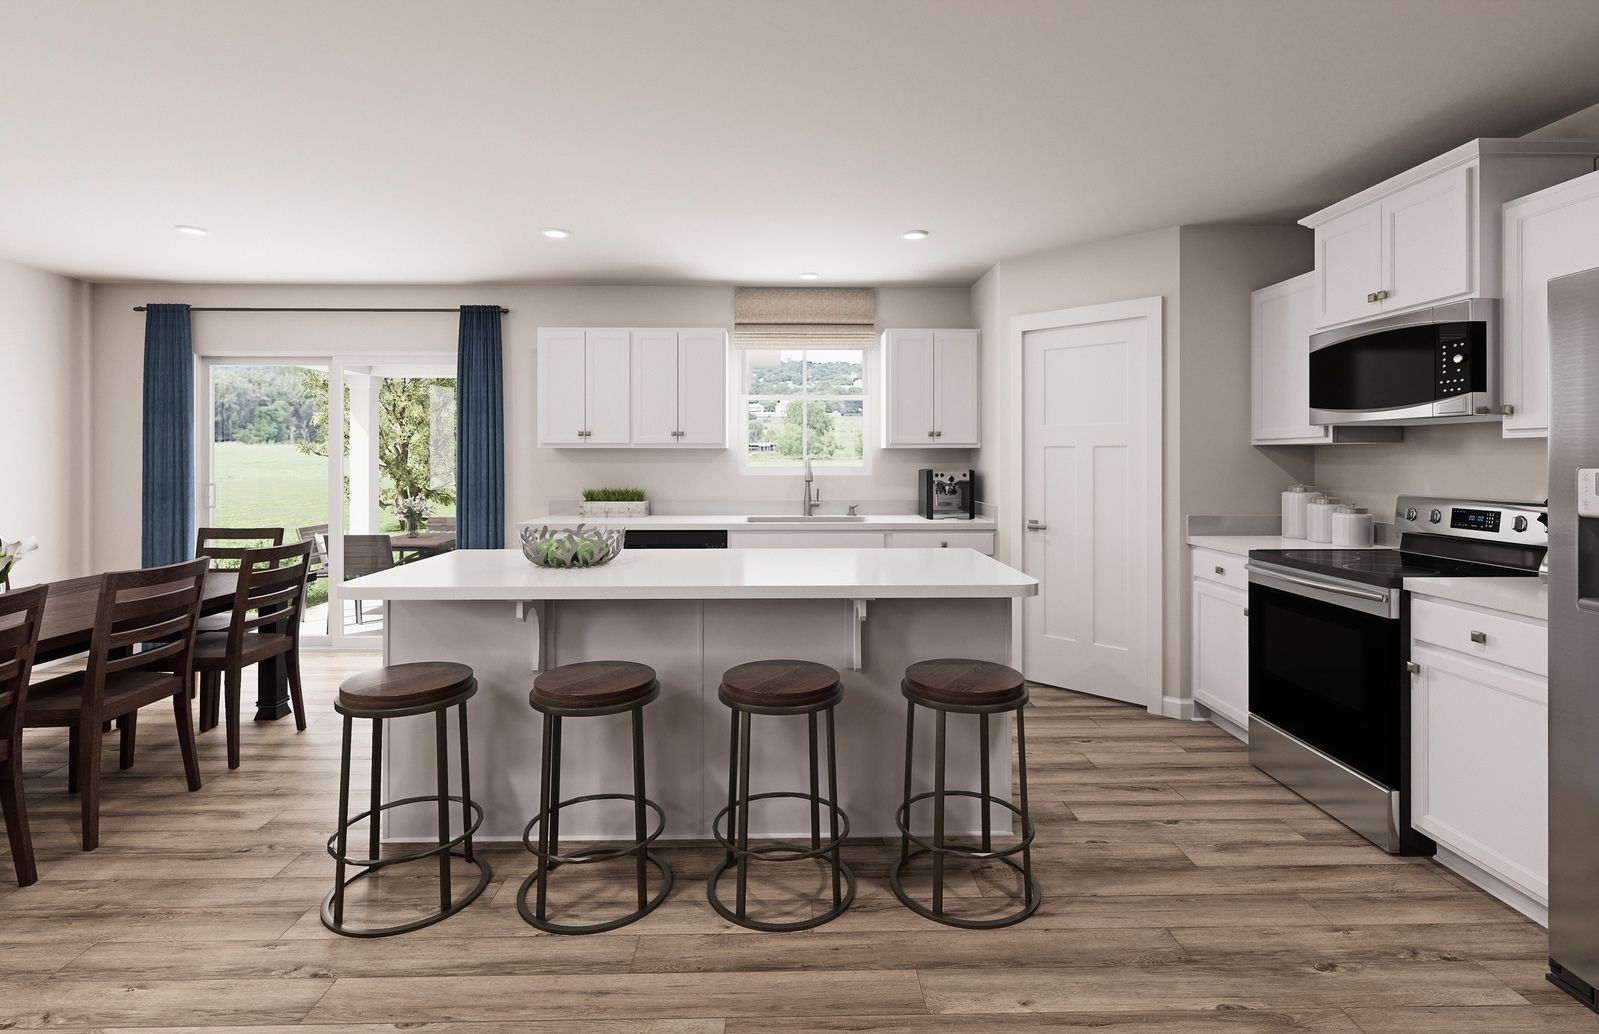 Kitchen featured in the Eden Cay By Ryan Homes in Norfolk-Newport News, VA